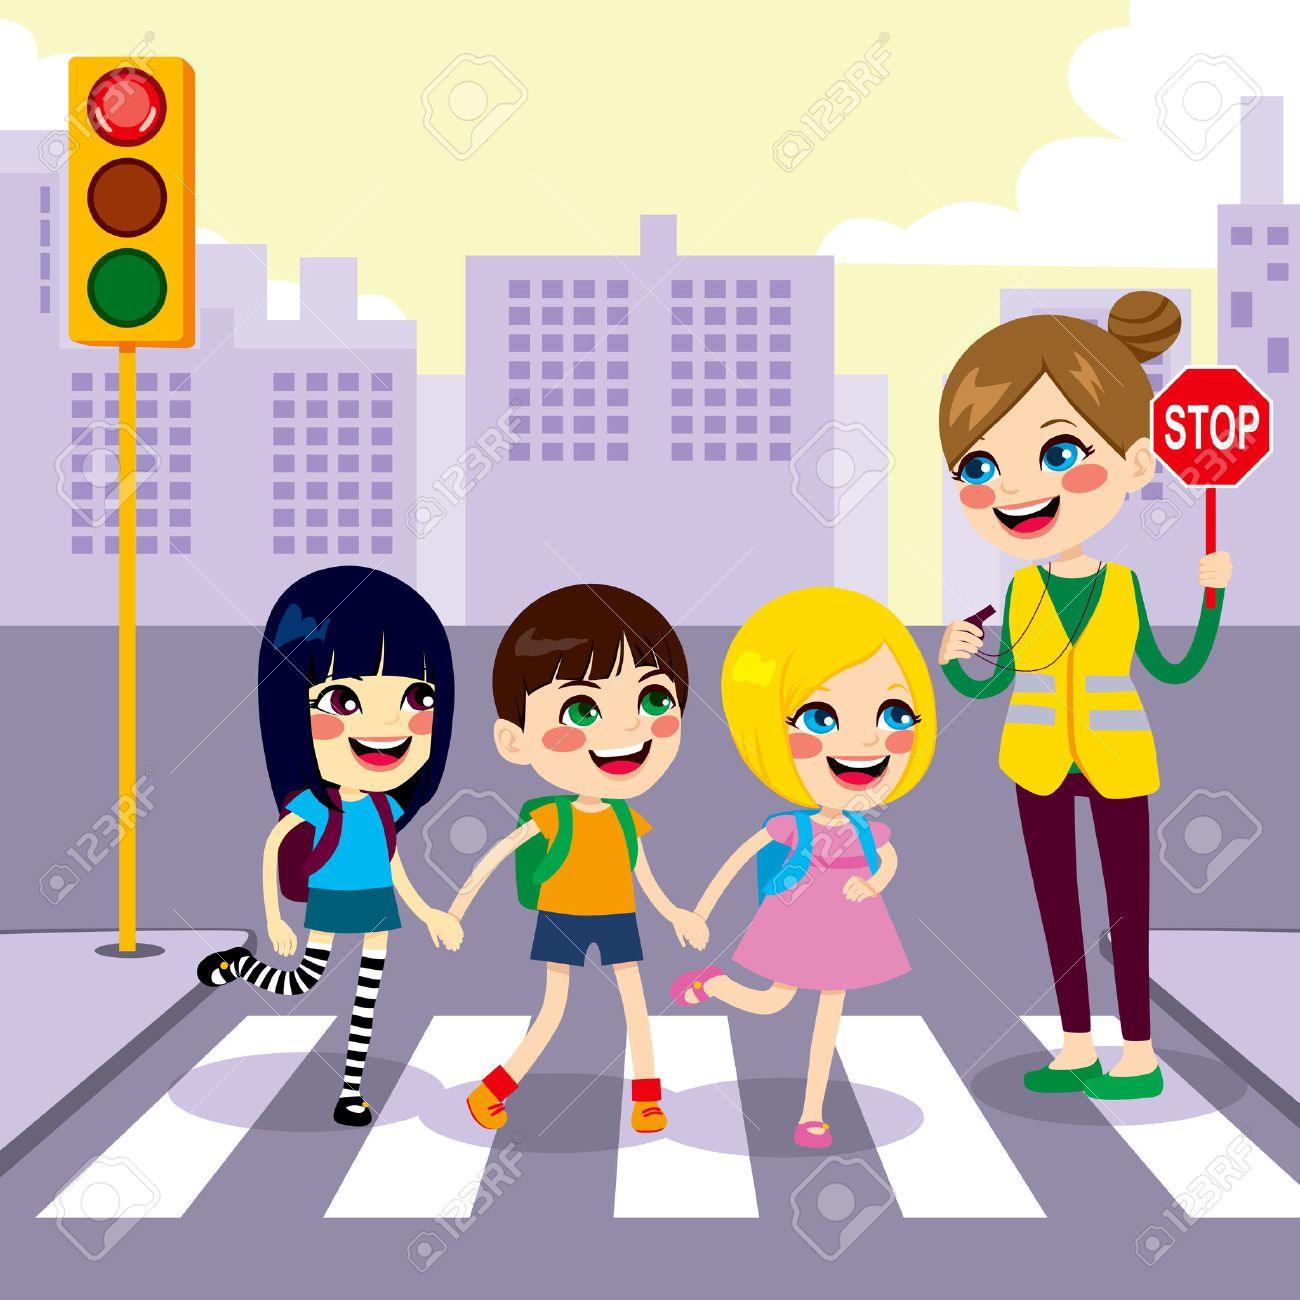 542260 street cliparts stock vector and royalty free street three cute little children school students crossing street together with help from female teacher holding stop biocorpaavc Choice Image